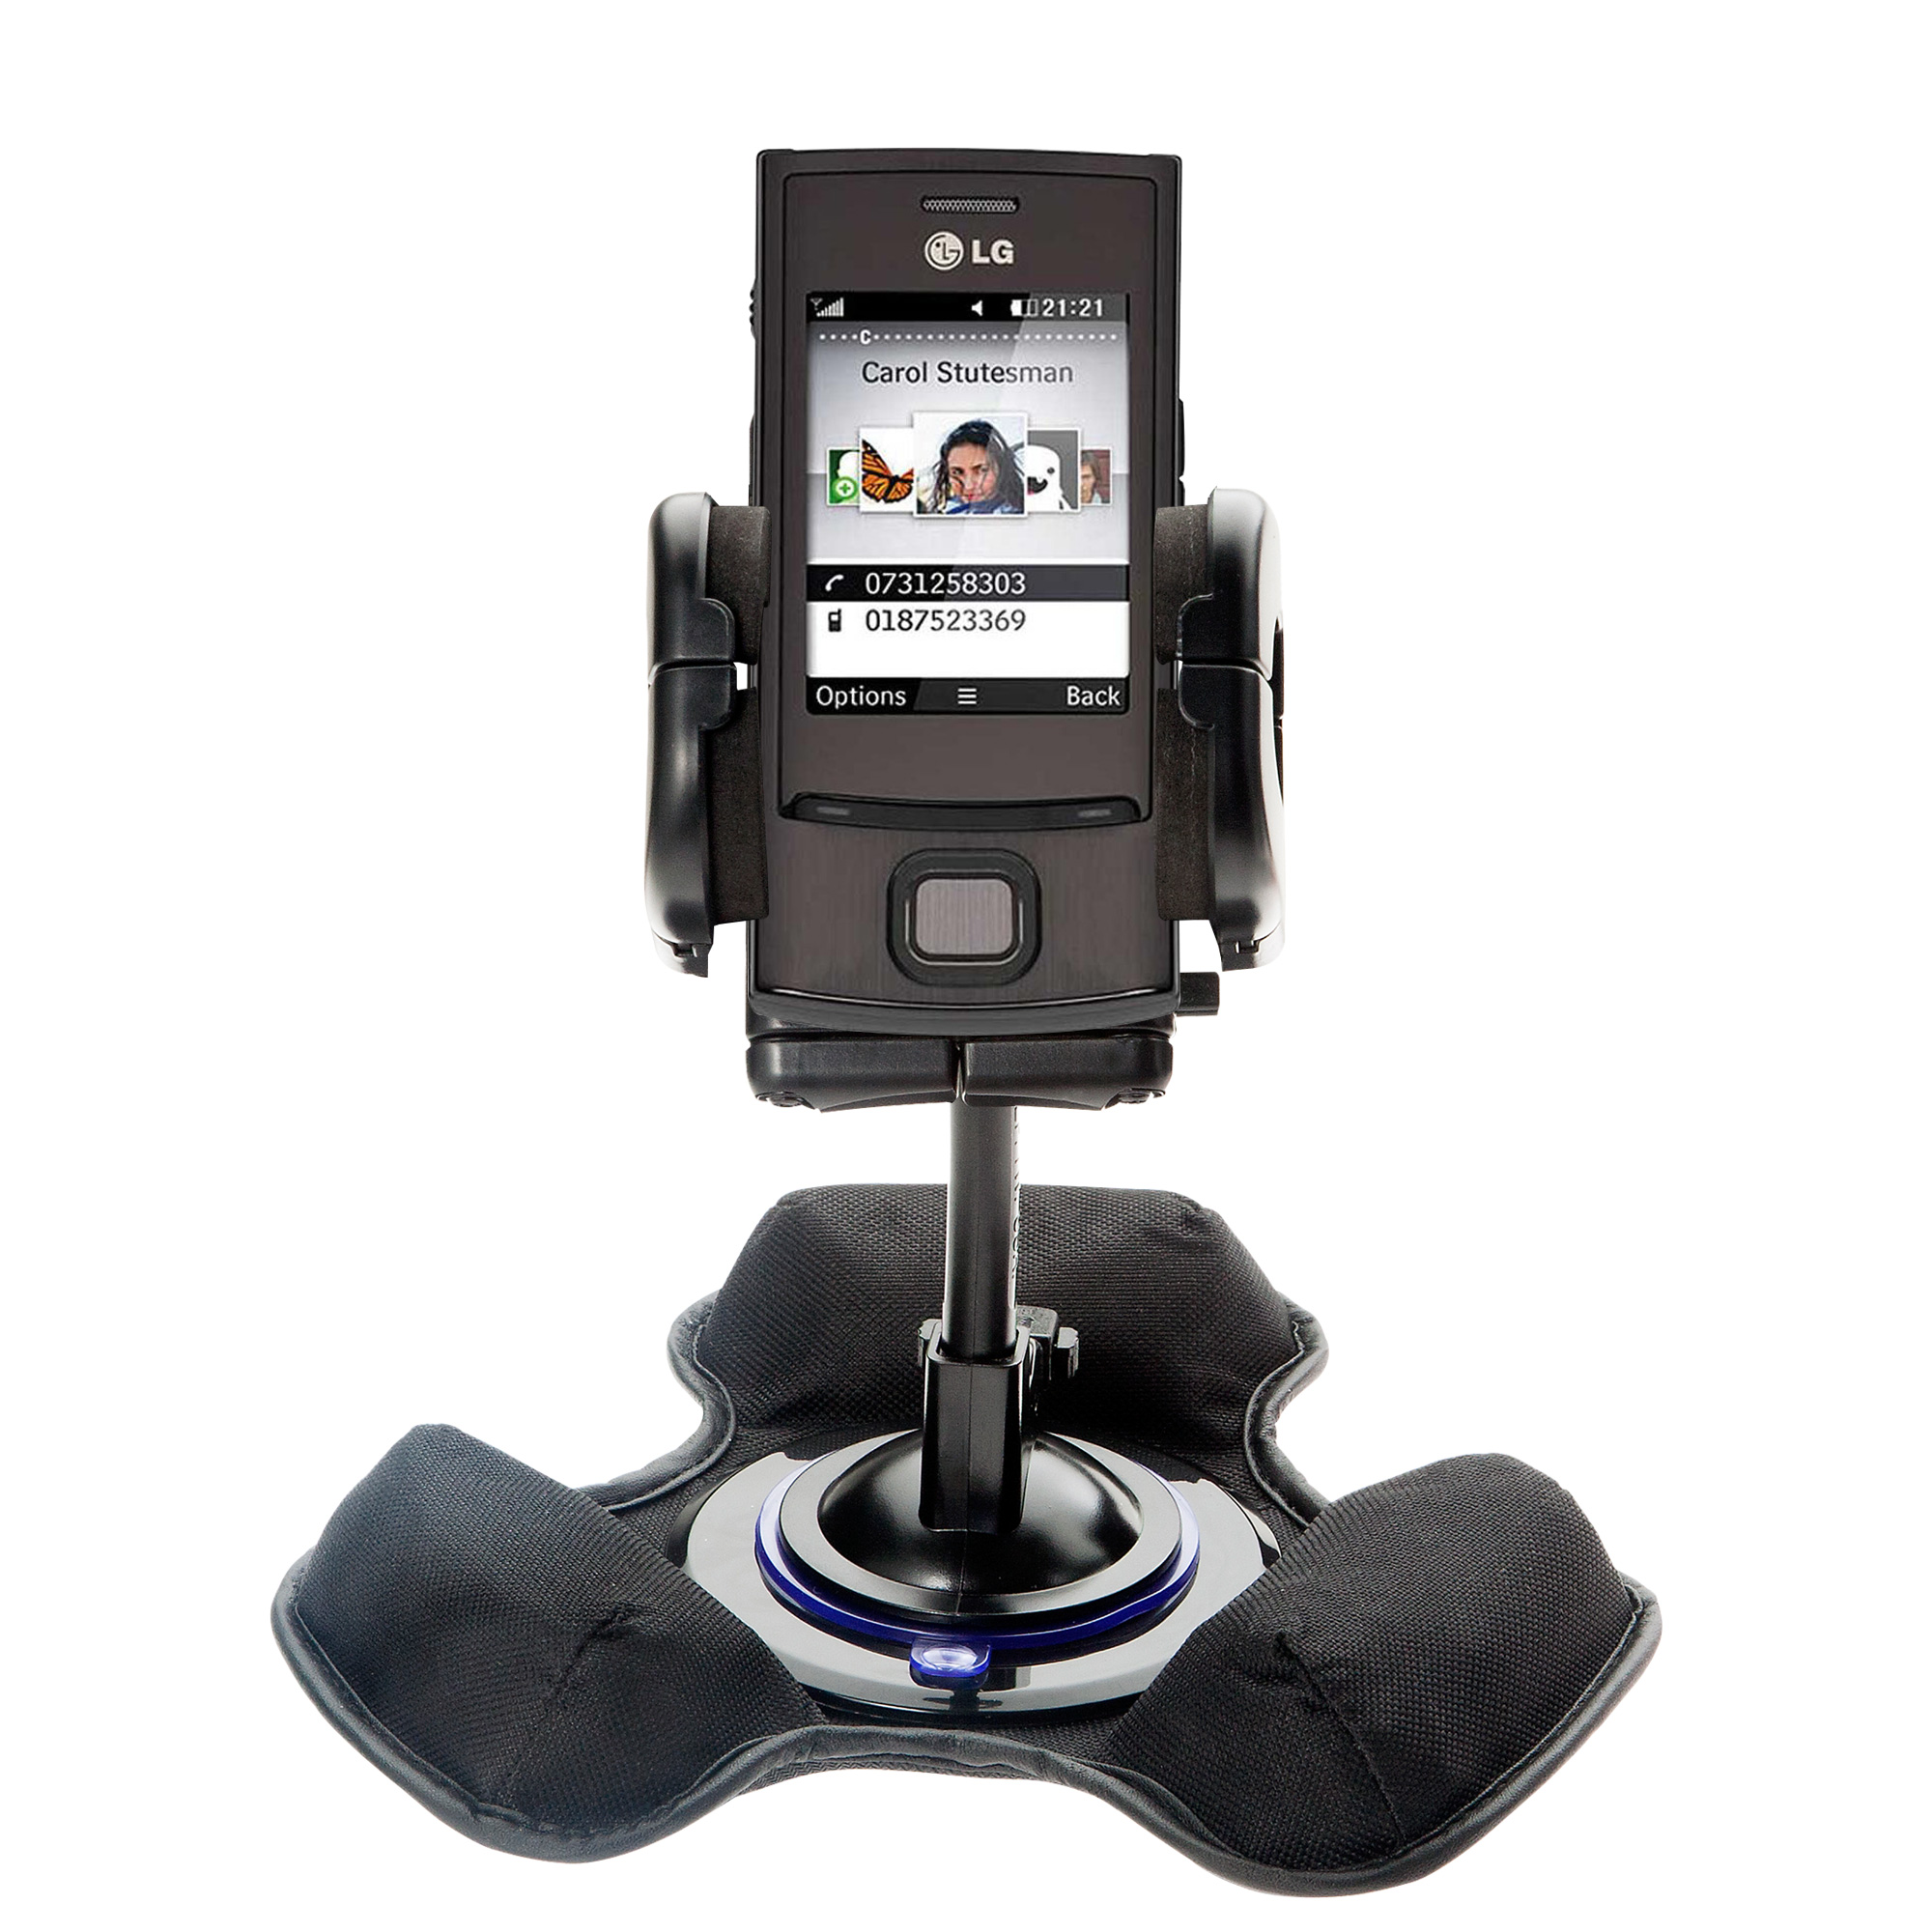 Dash and Windshield Holder compatible with the LG GD550